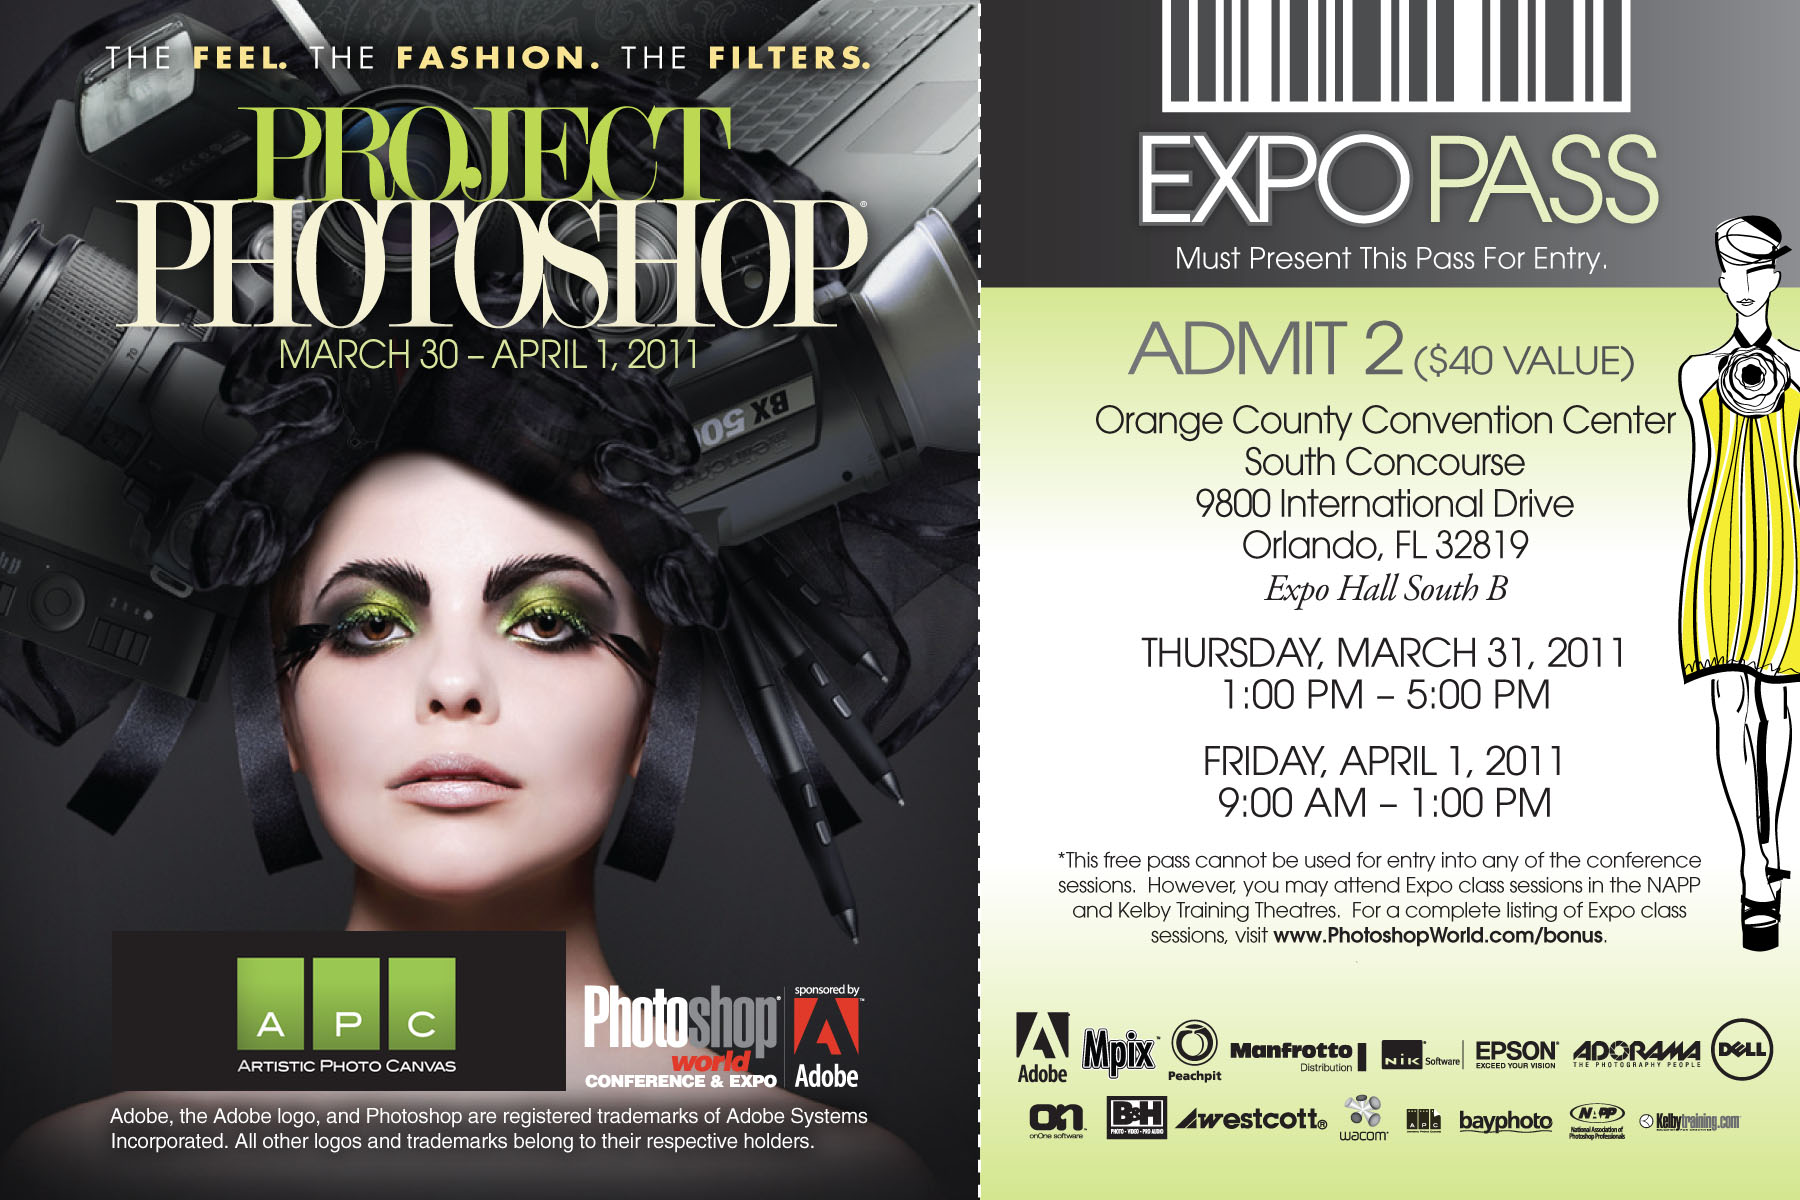 APC Photoshop World Tech Expo Free Pass